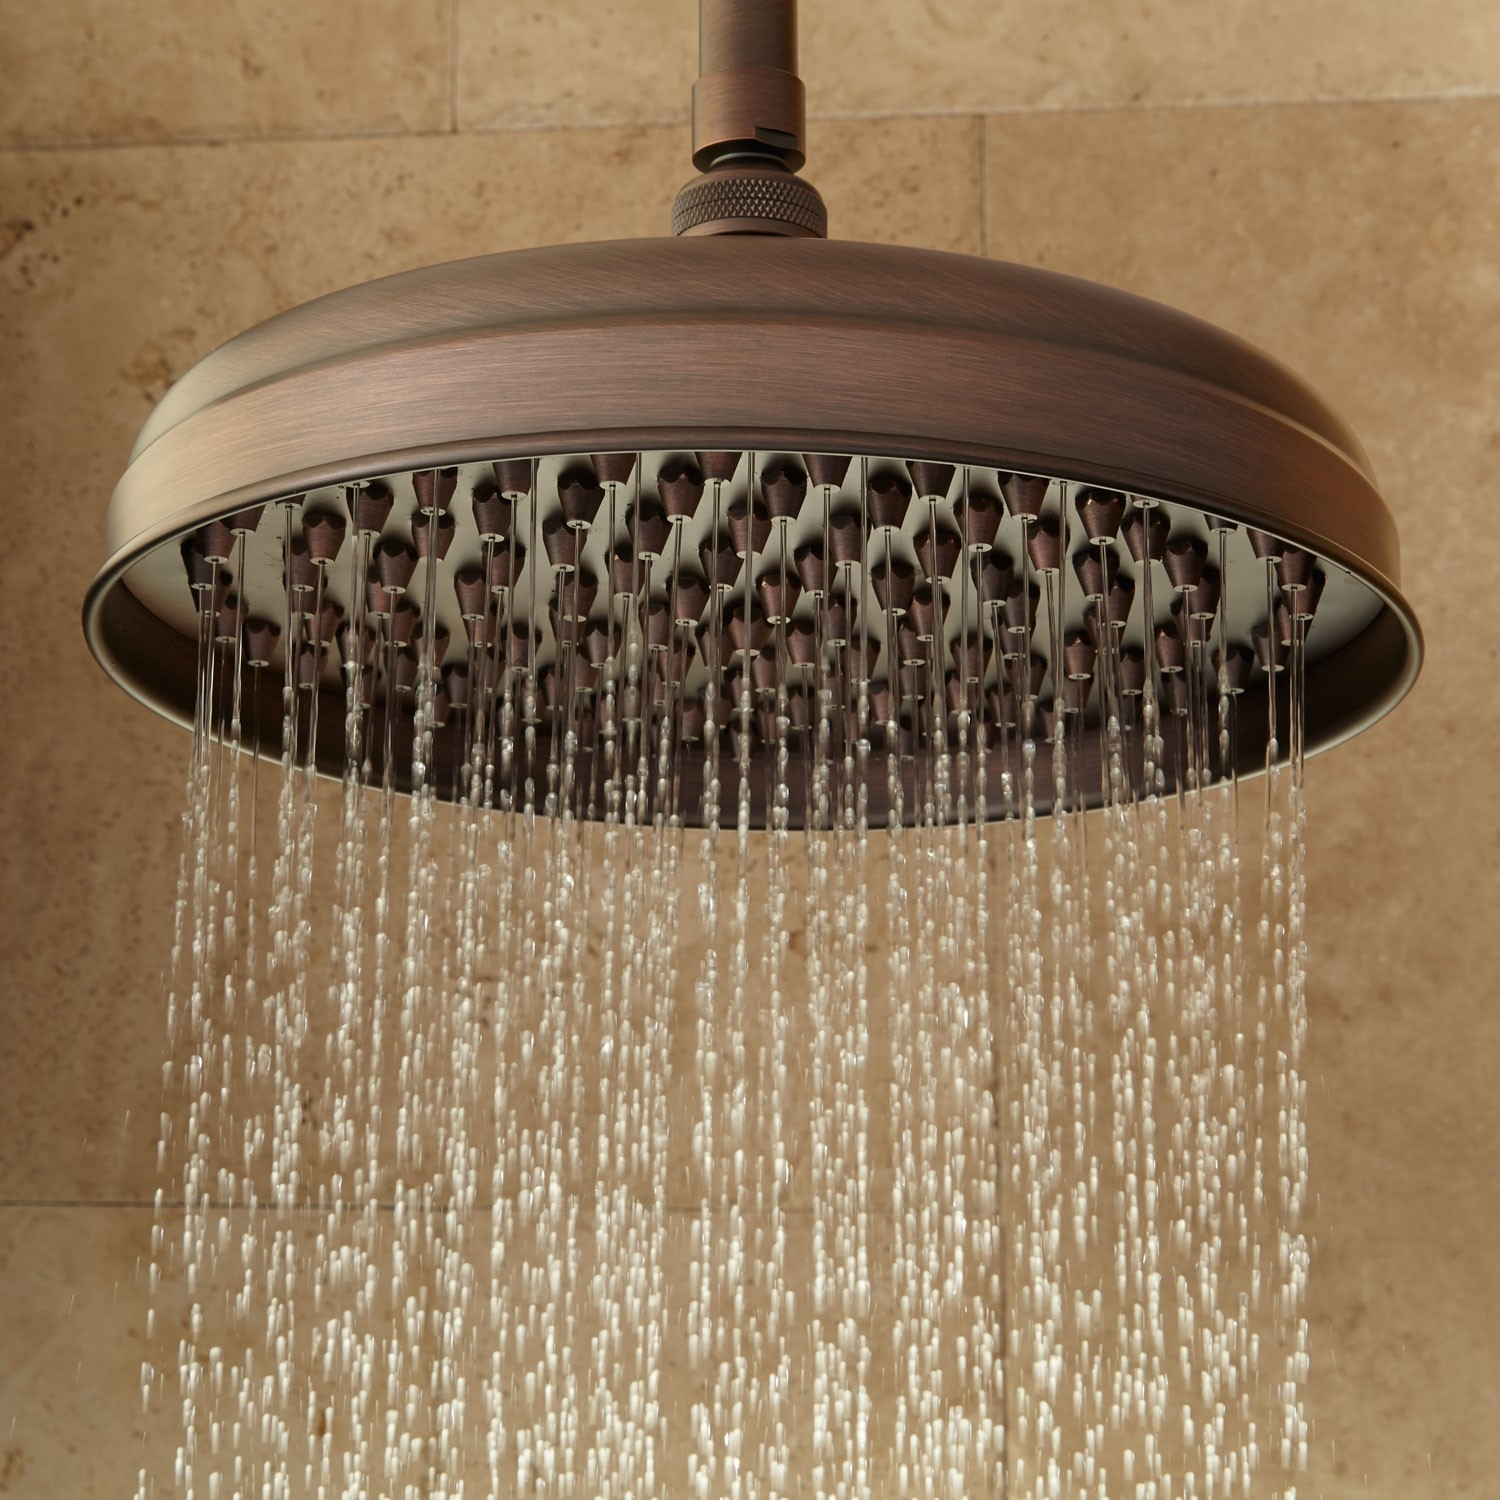 ceiling mounted rain shower faucets ceiling mounted rain shower faucets lambert rainfall nozzle shower head rain showers shower bathroom 1500 x 1500